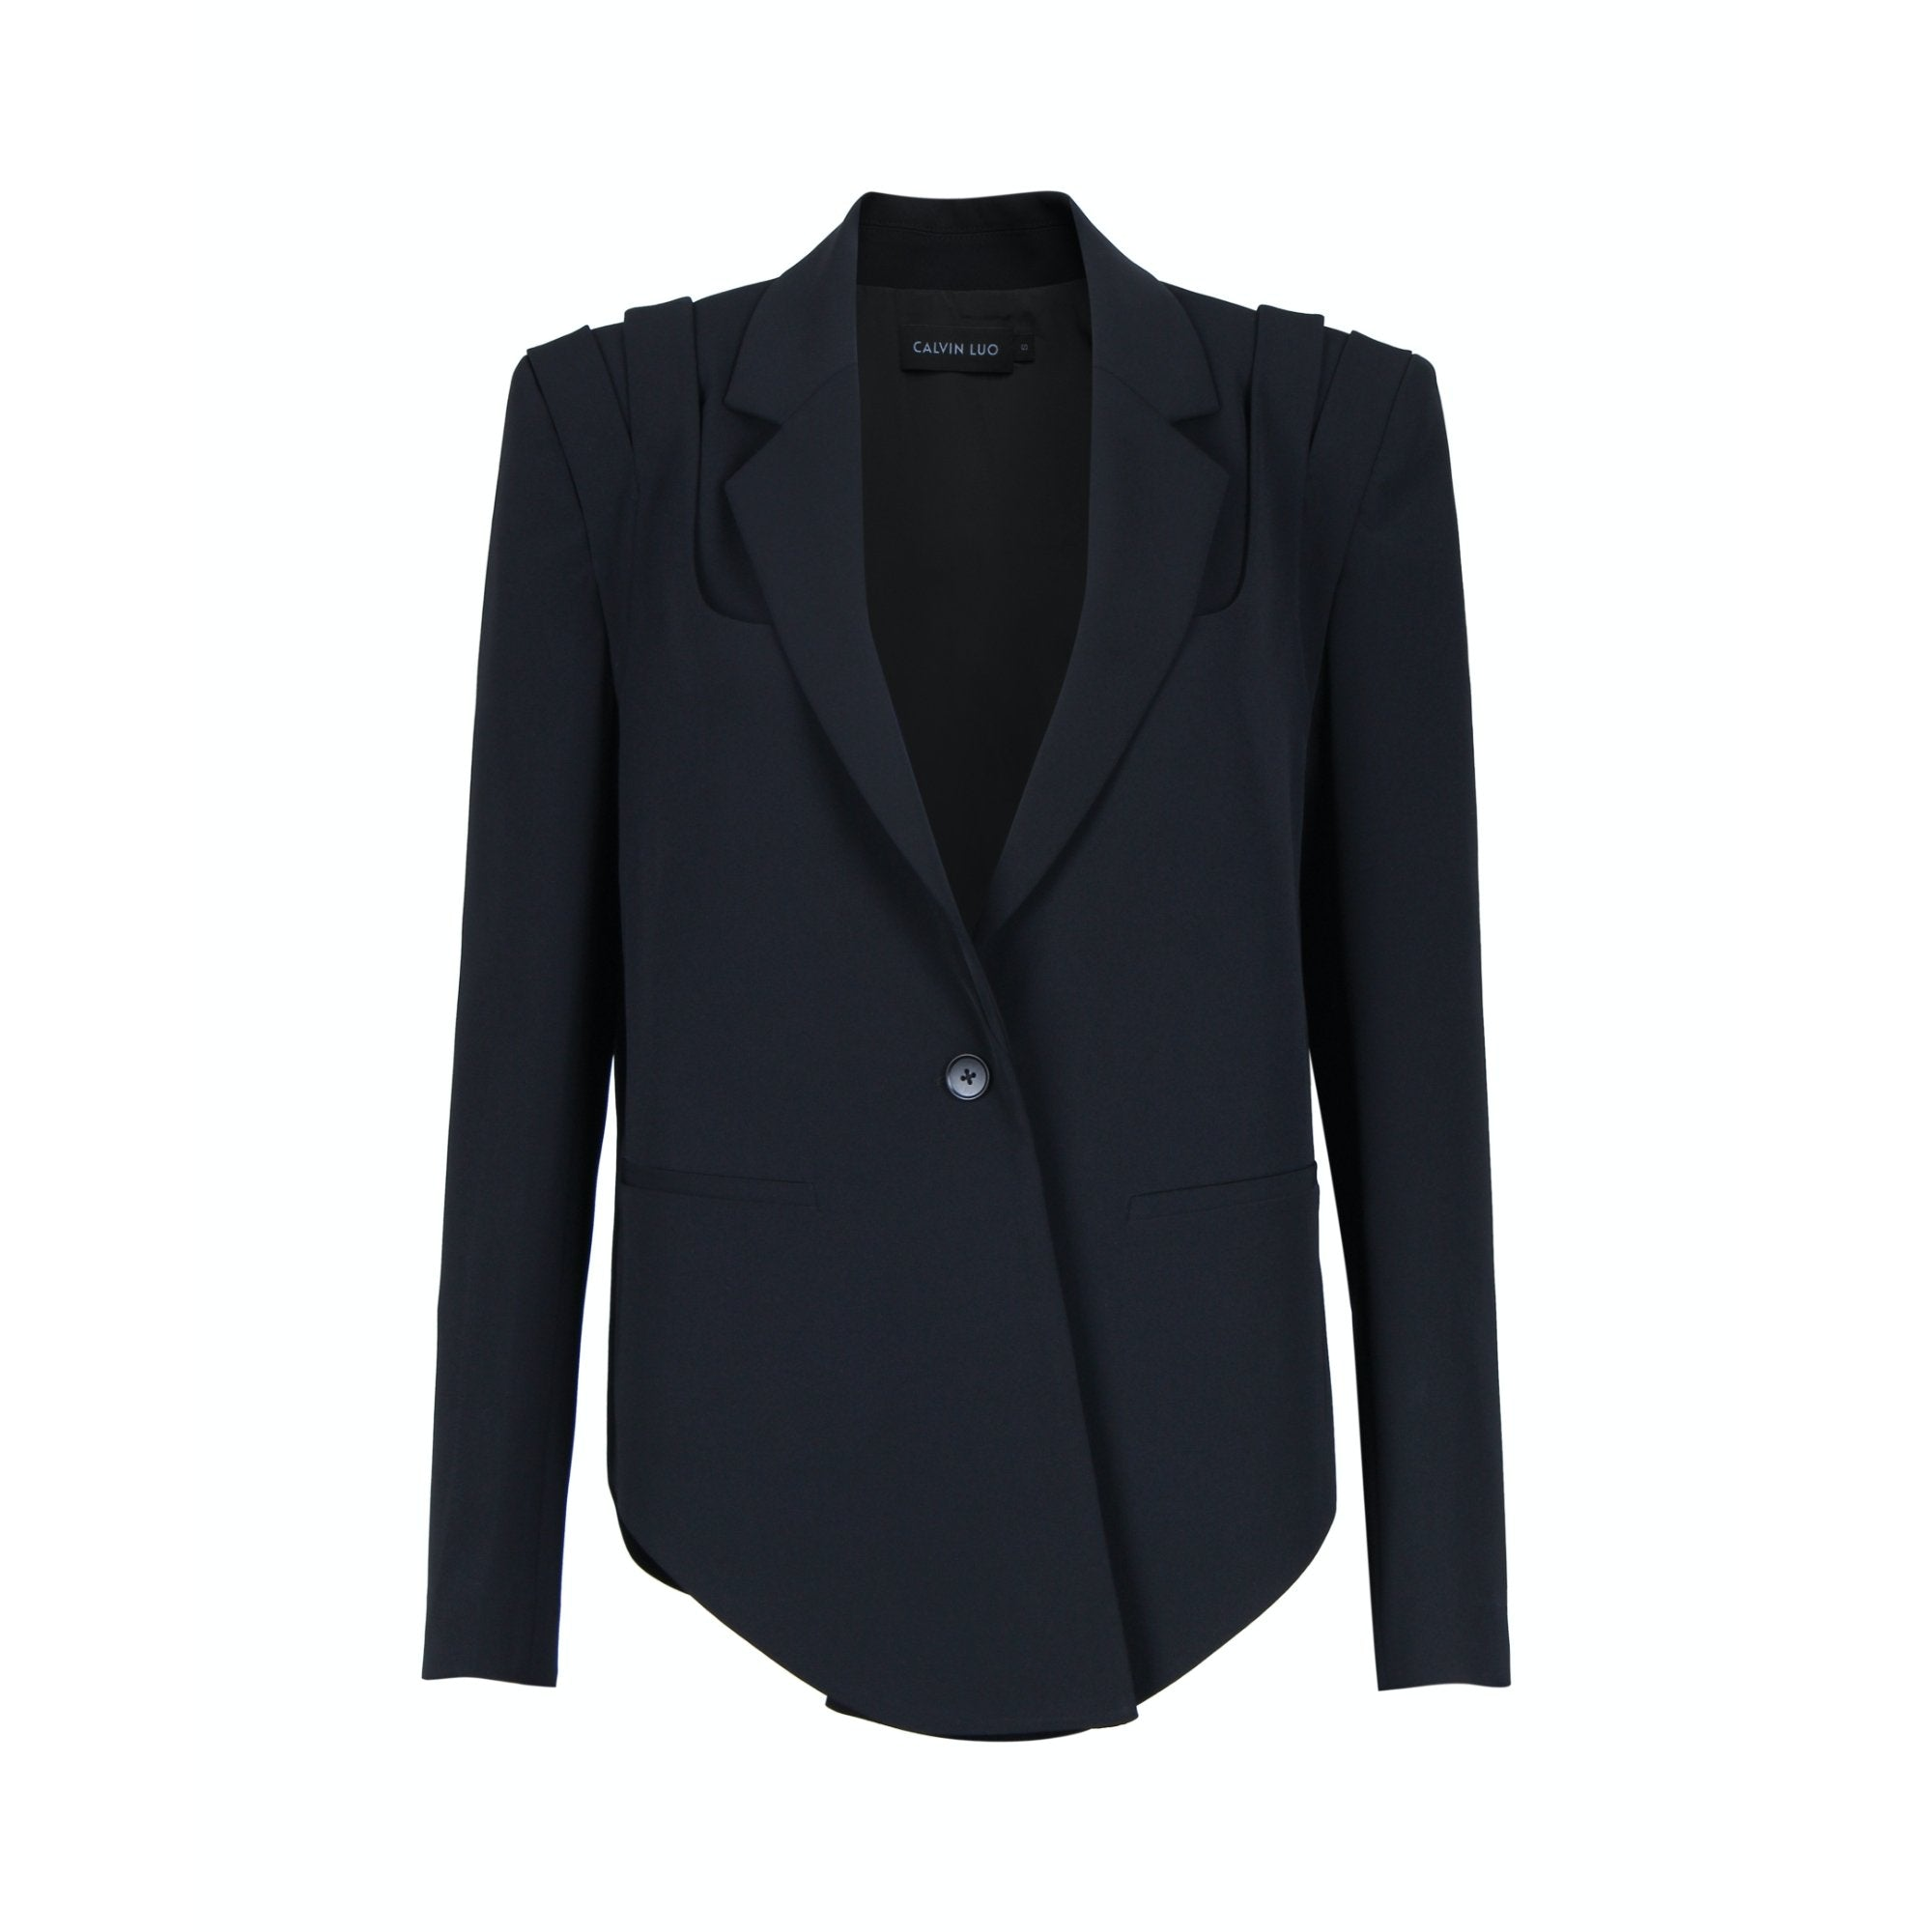 CALVIN LUO Black Shoulder Strap Jacket | MADA IN CHINA